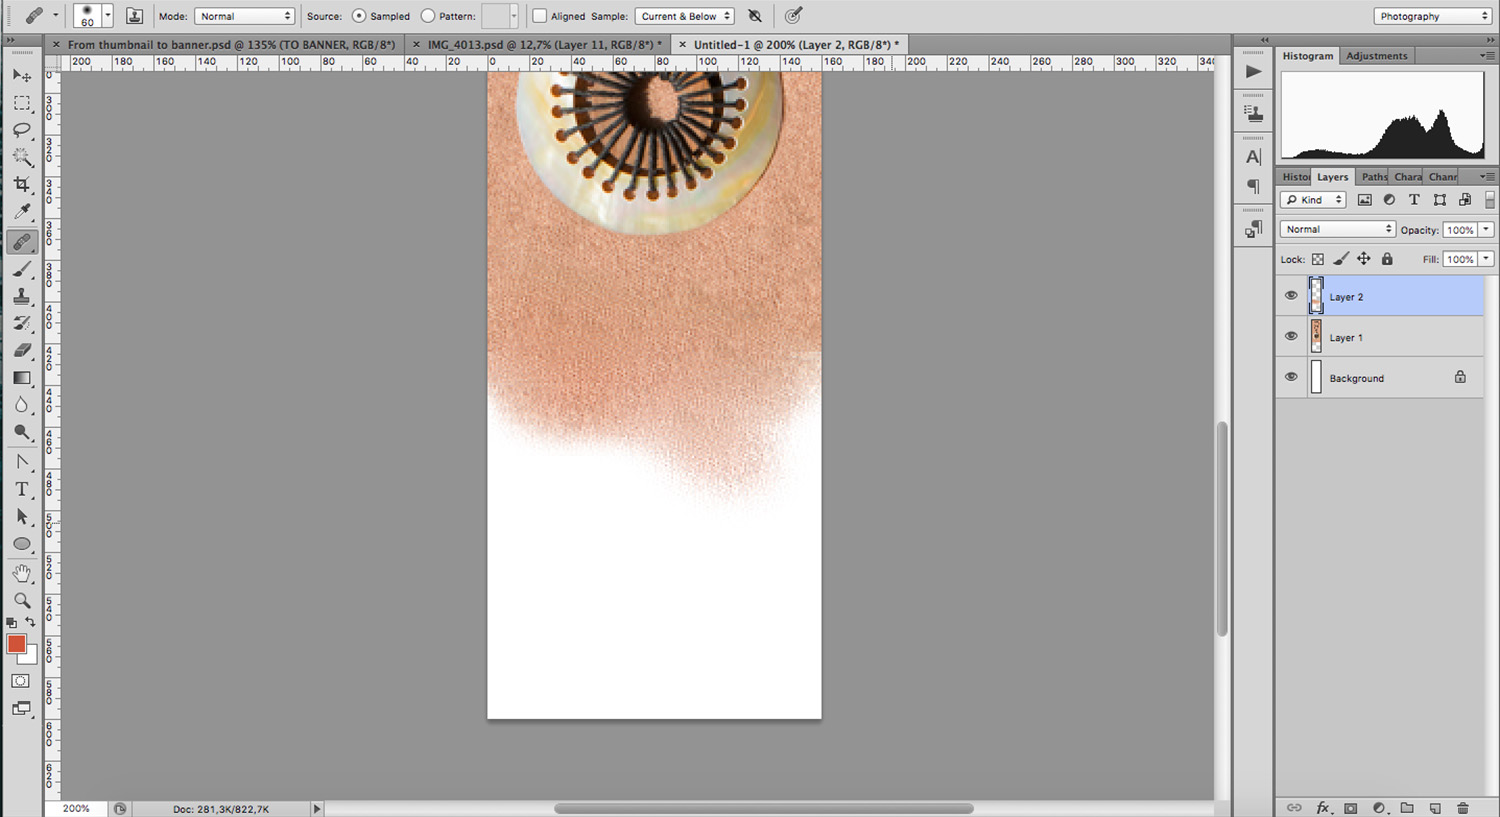 Healing brush is a versatile photoshop tool to edit backgrounds